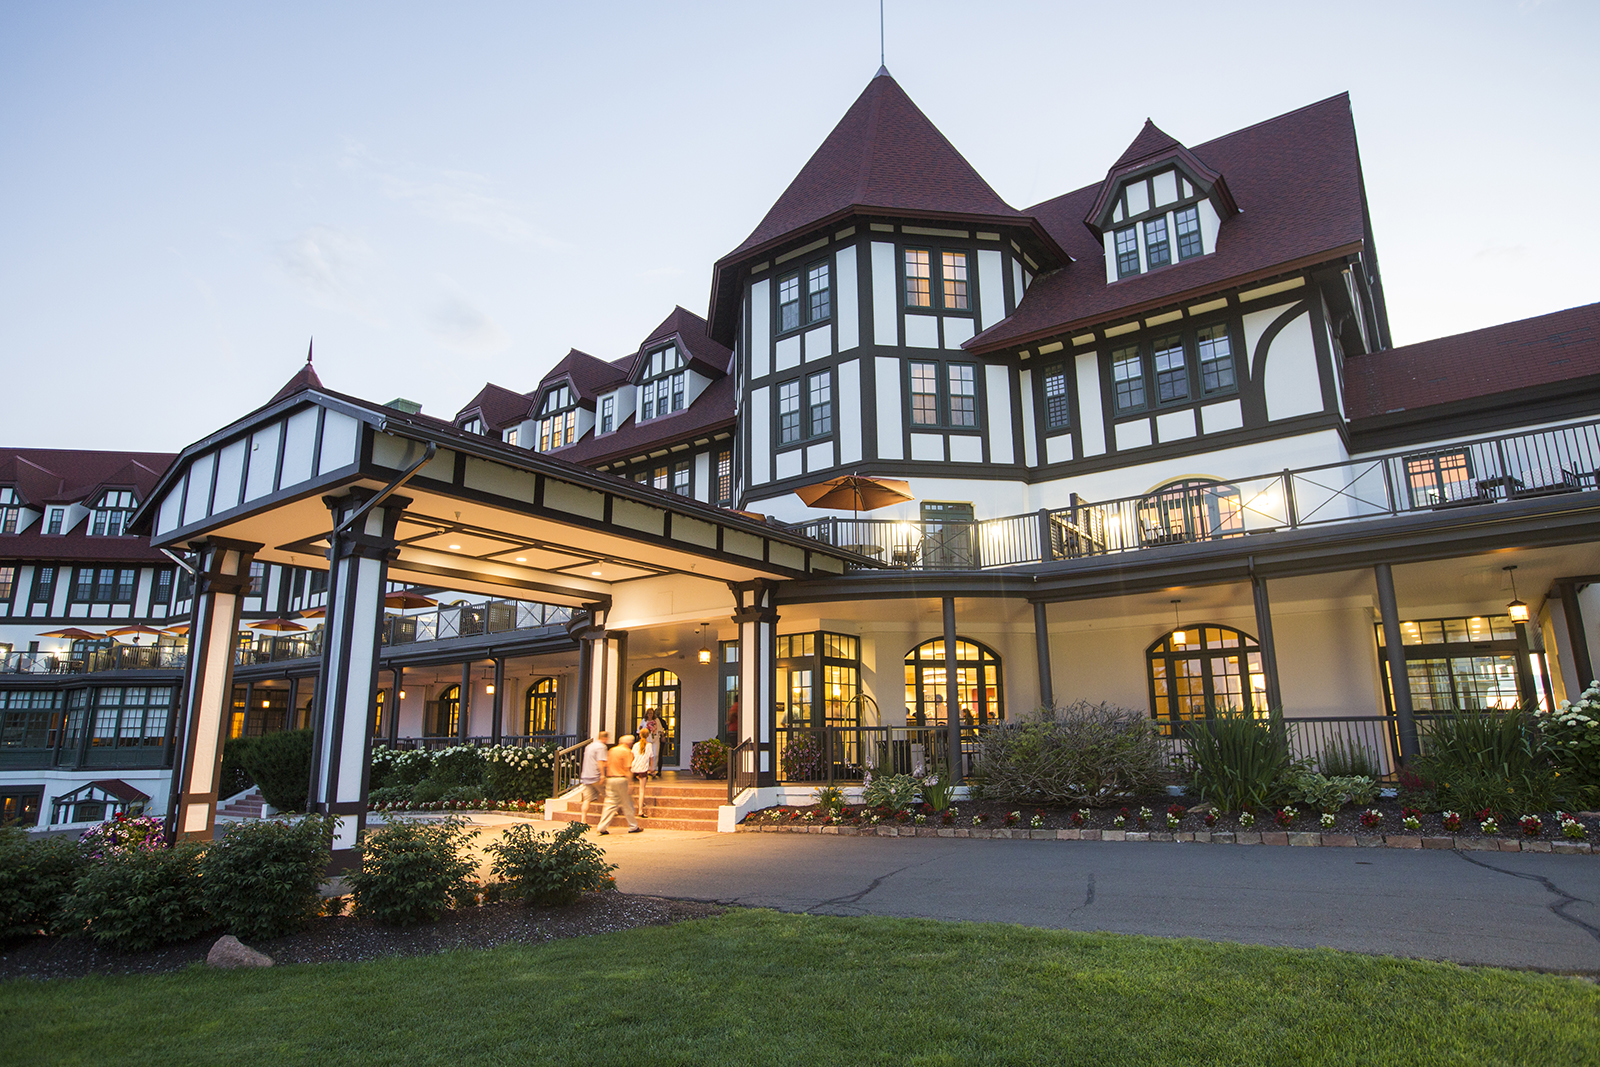 The Algonquin Resort, St. Andrews, NB